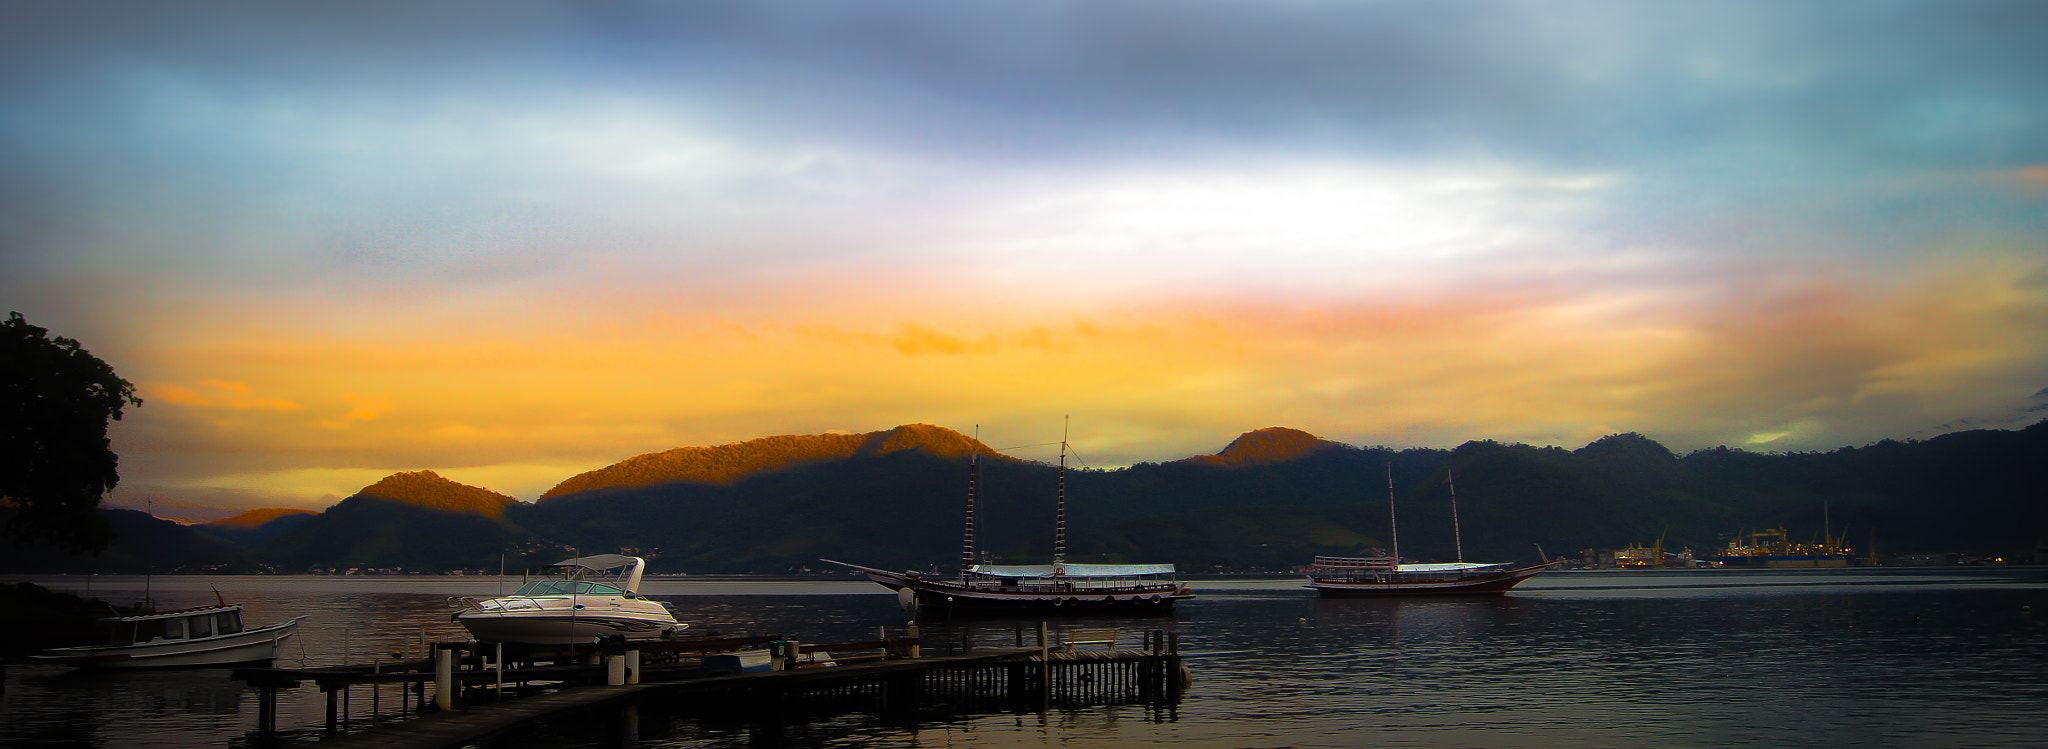 Photograph Angra dos Reis; Breaking dawn.  by Roberto Manzanares on 500px